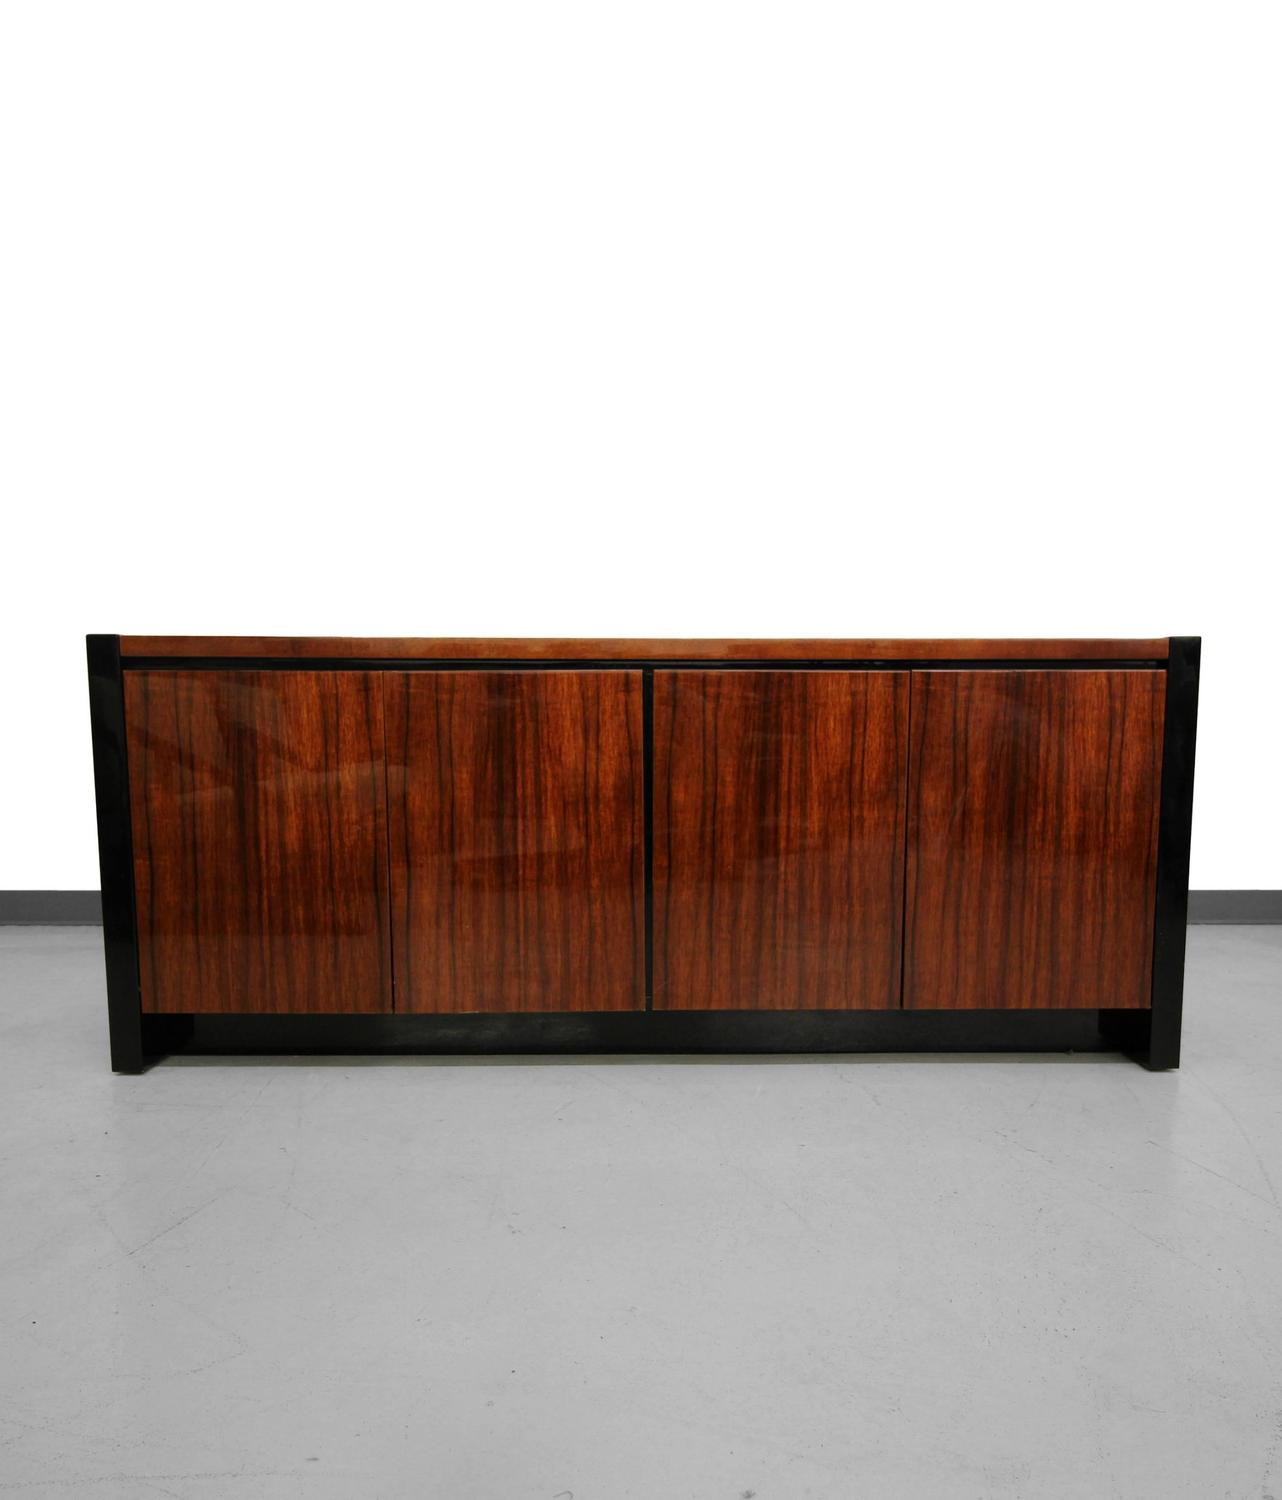 Koa Wood Kitchen Cabinets: Black Lacquer And Koa Wood Credenza By Henredon For Sale At 1stdibs